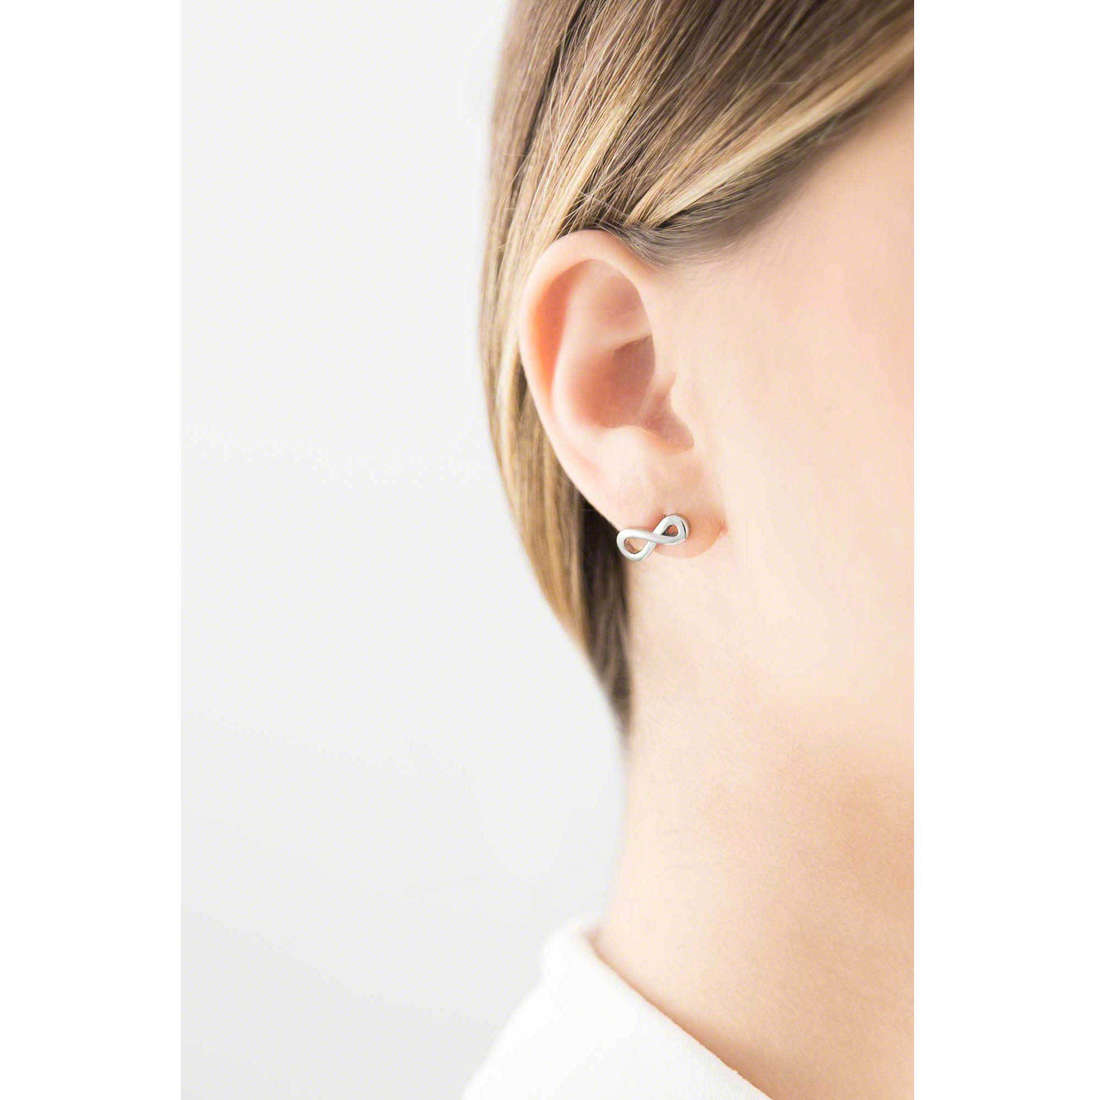 Marlù boucles d'oreille My infinity femme 18OR001 indosso